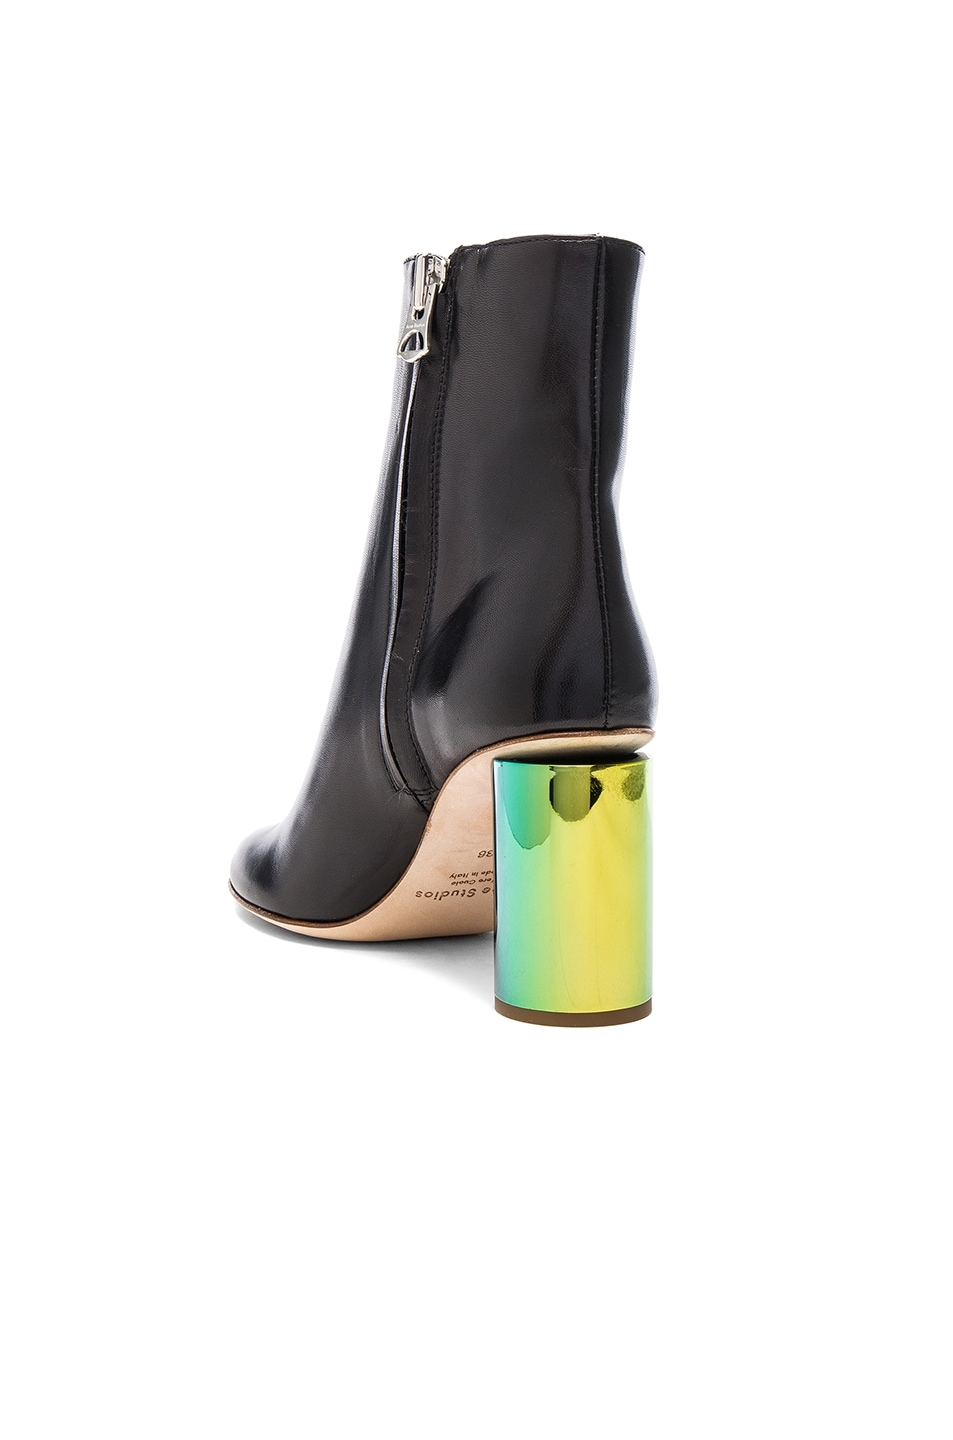 Image 3 of Acne Studios Leather Althea Booties in Black & Oily Yellow